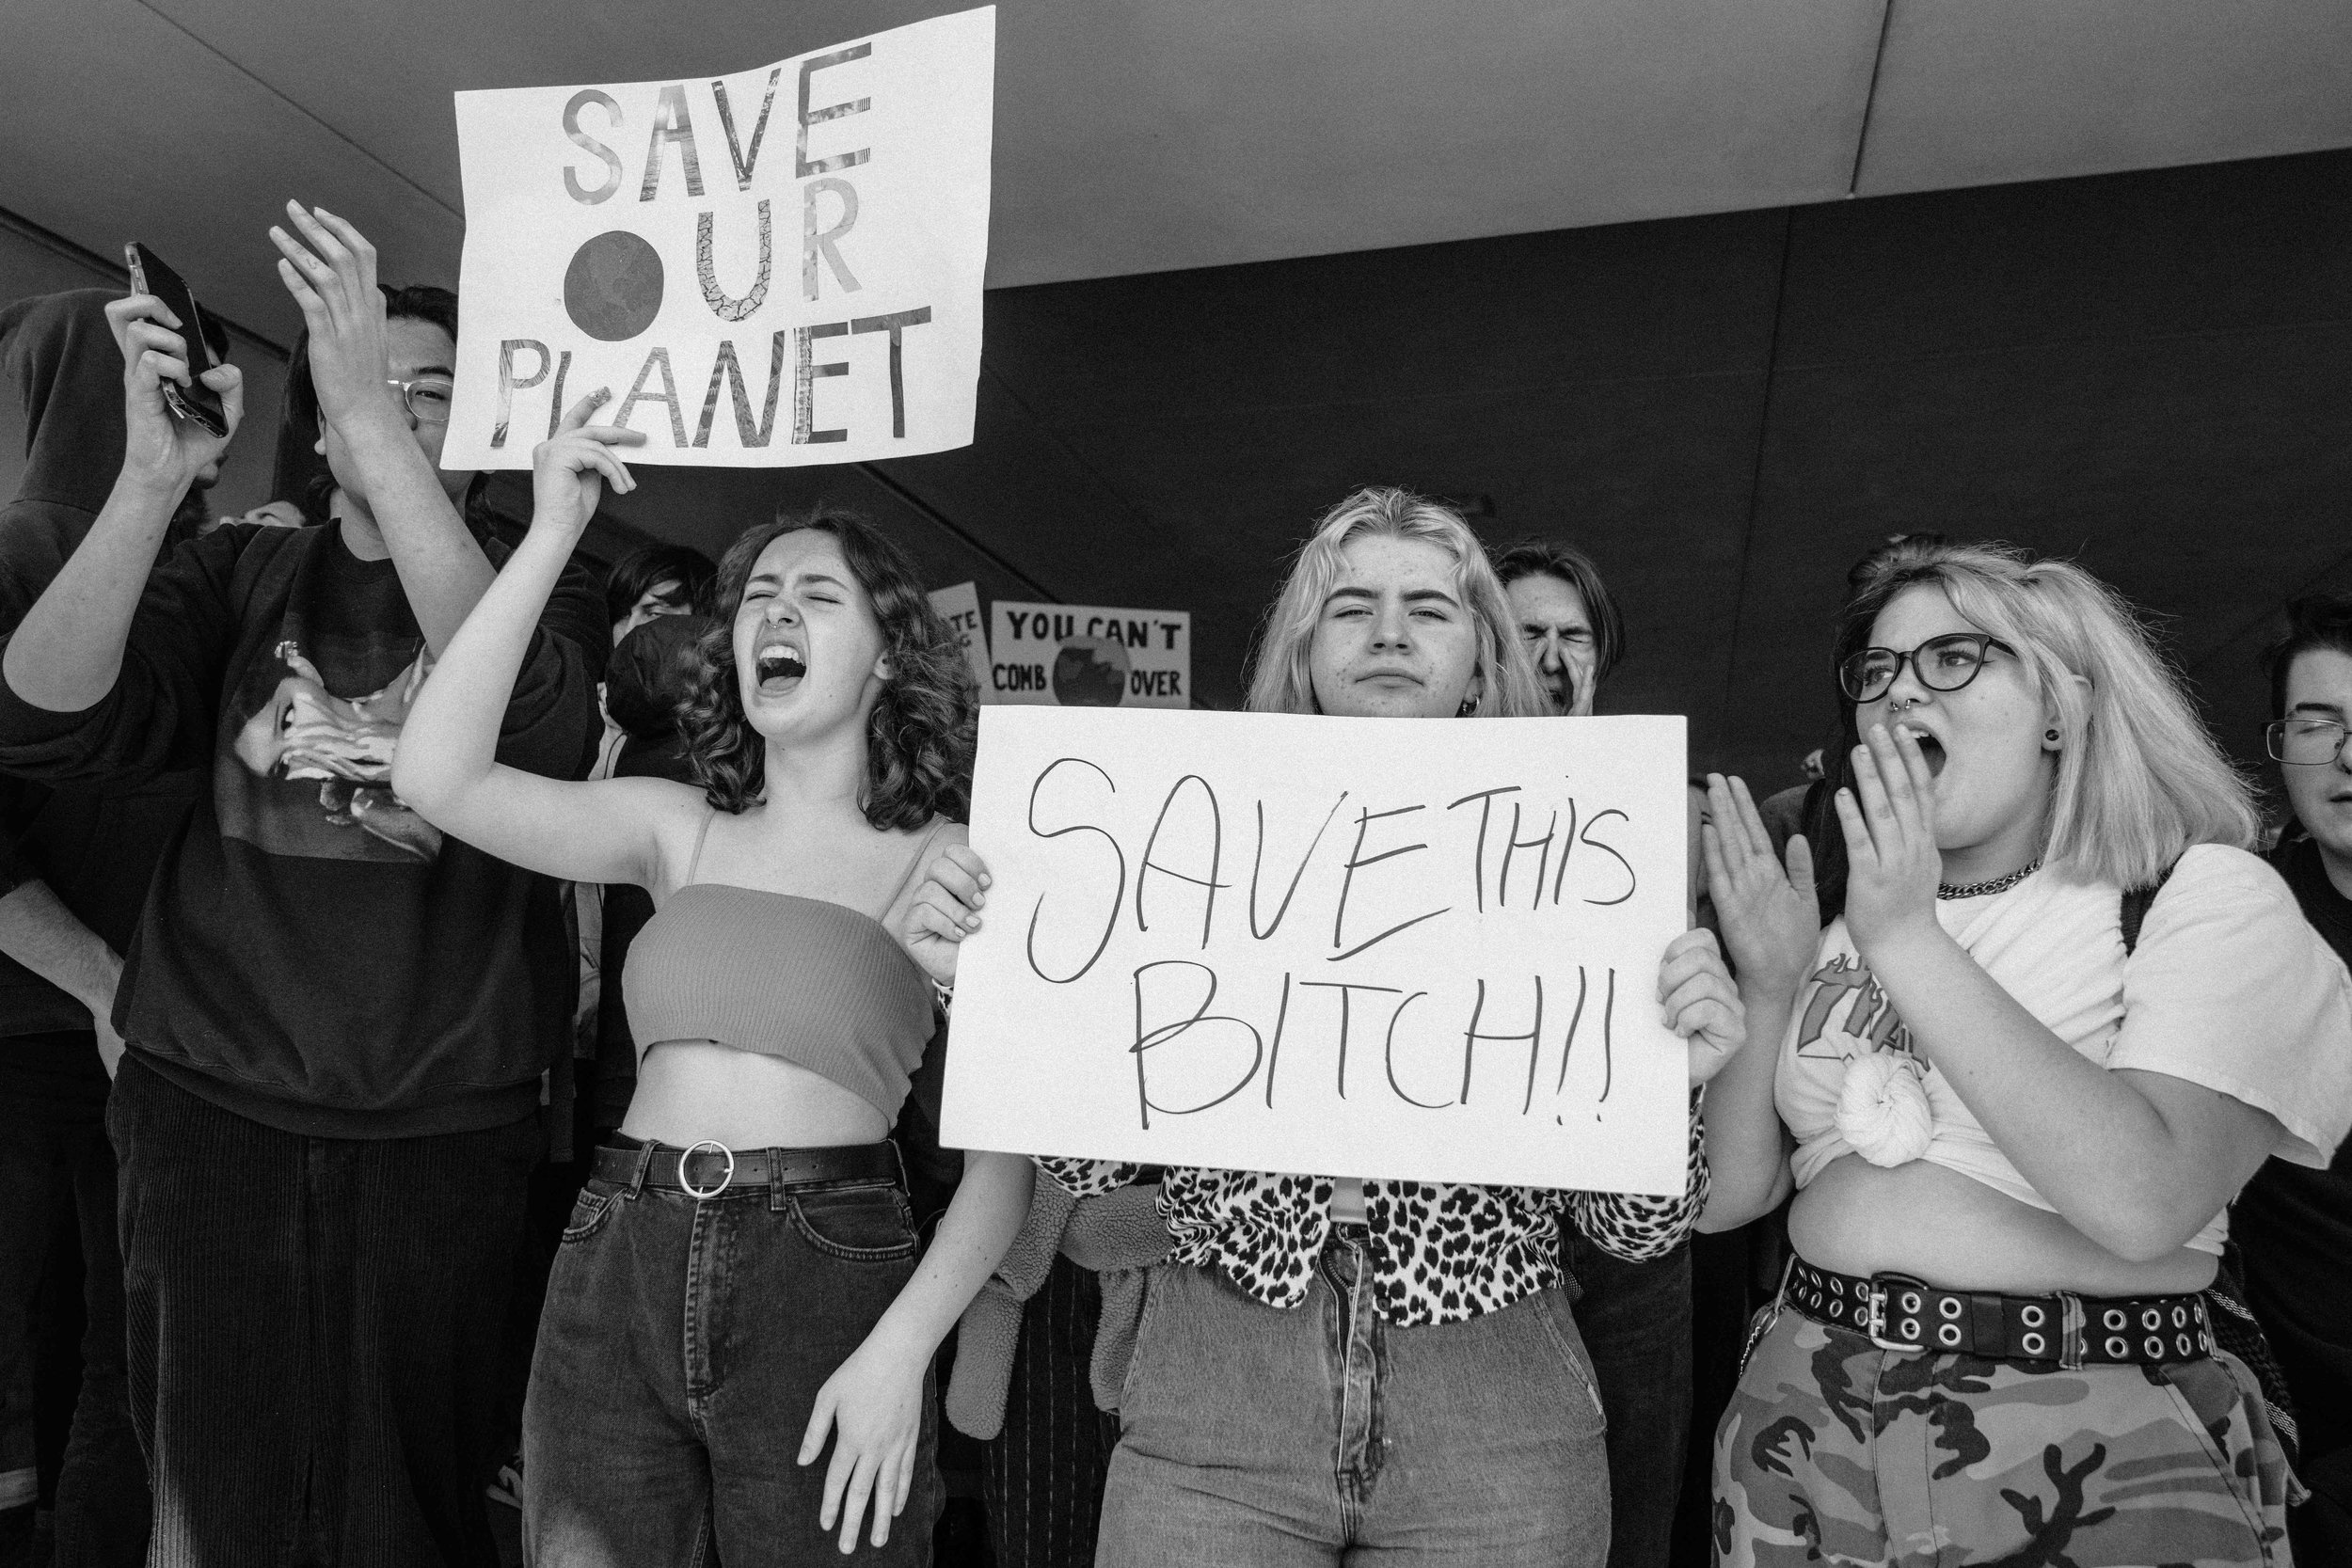 save-our-planet-climate-change-march-students-josue-rivas.jpg